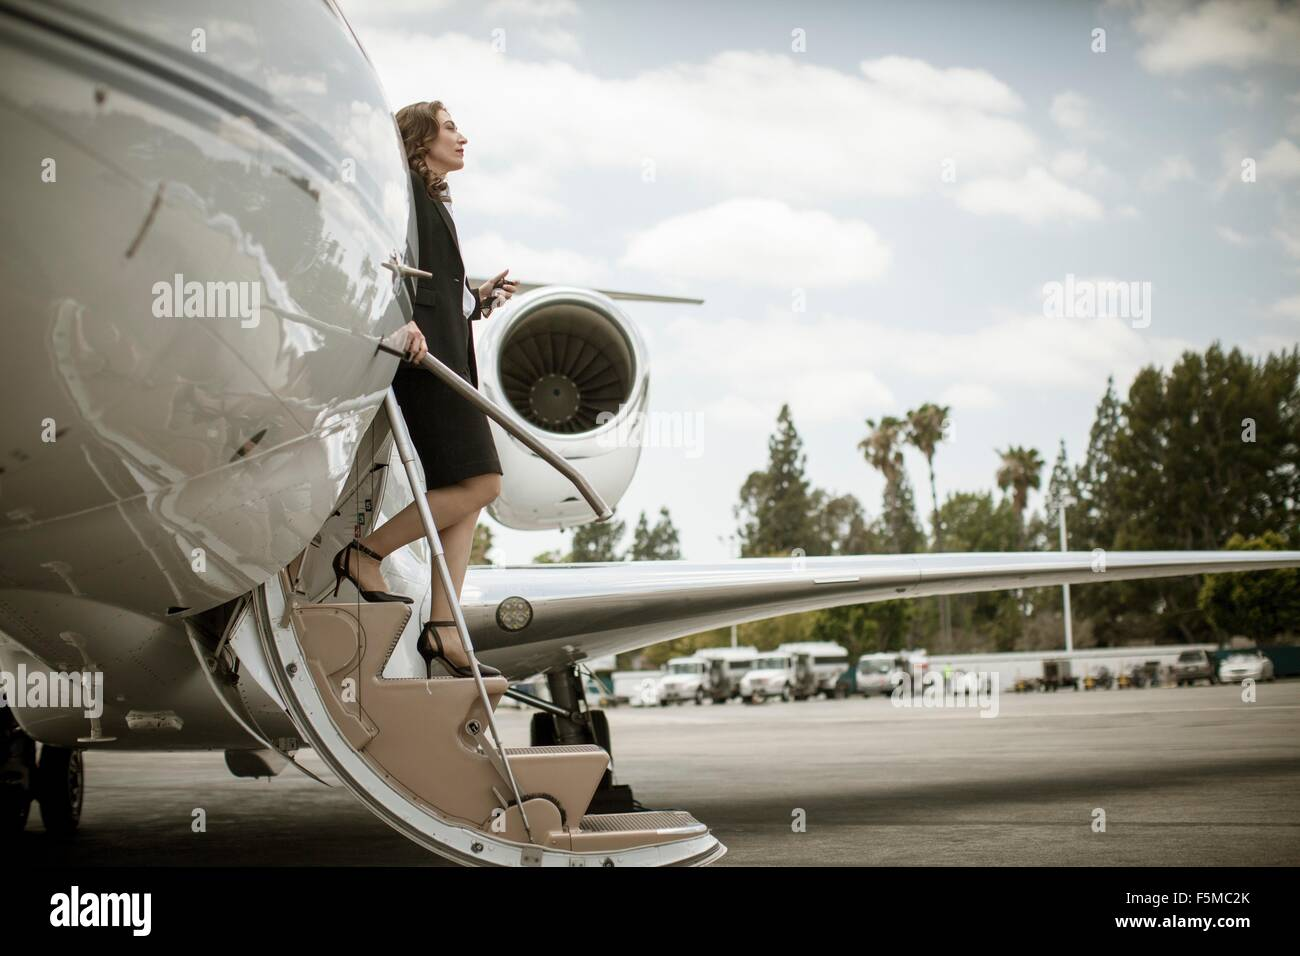 Female businesswoman stepping from private jet at airport - Stock Image